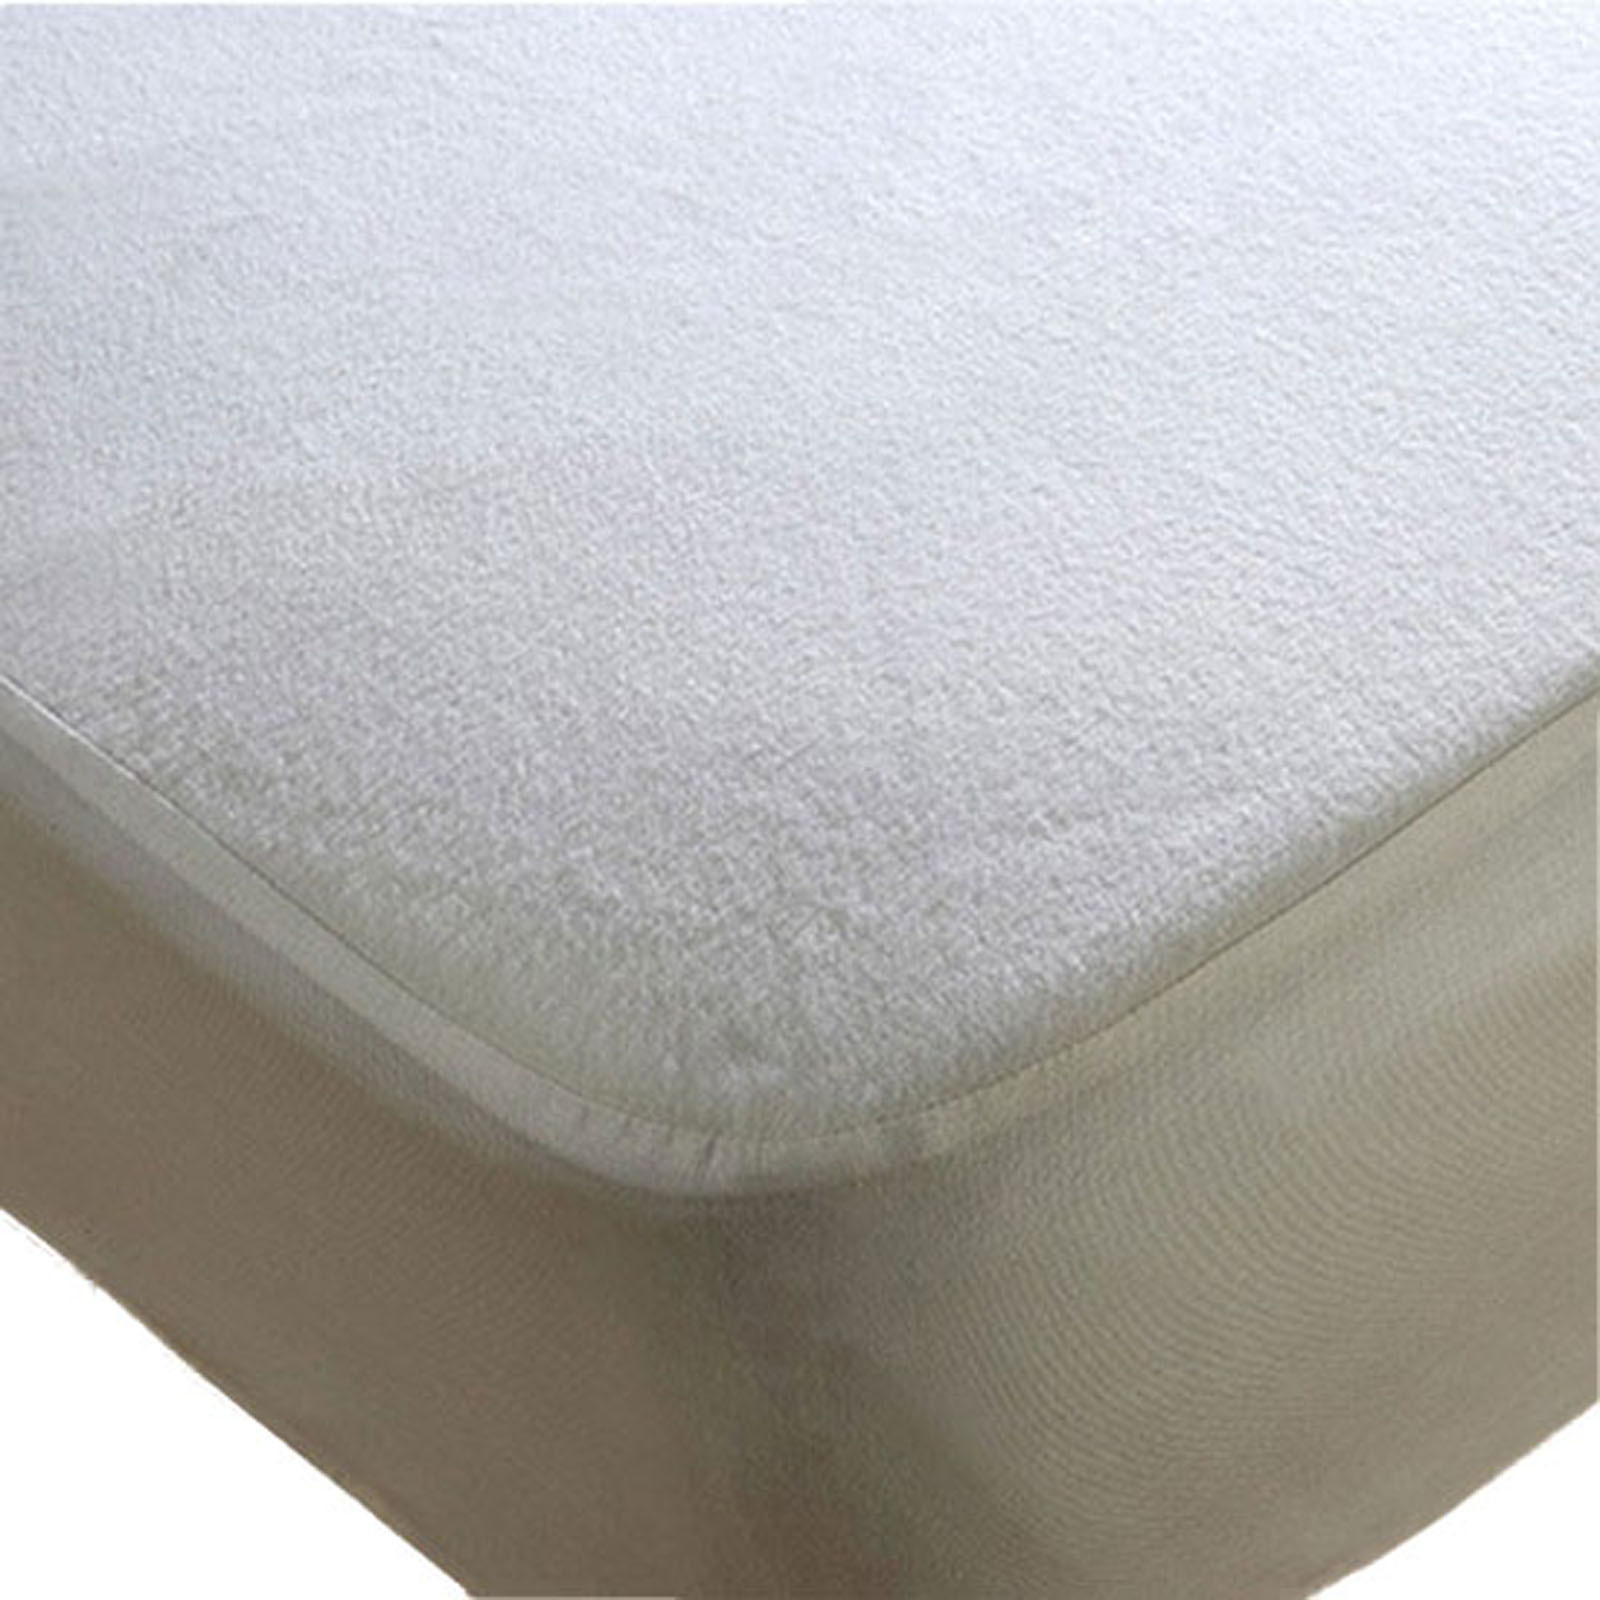 High Quality Terry Towel Waterproof Fitted Sheet Mattress Protector Cot Bed 70 x 140